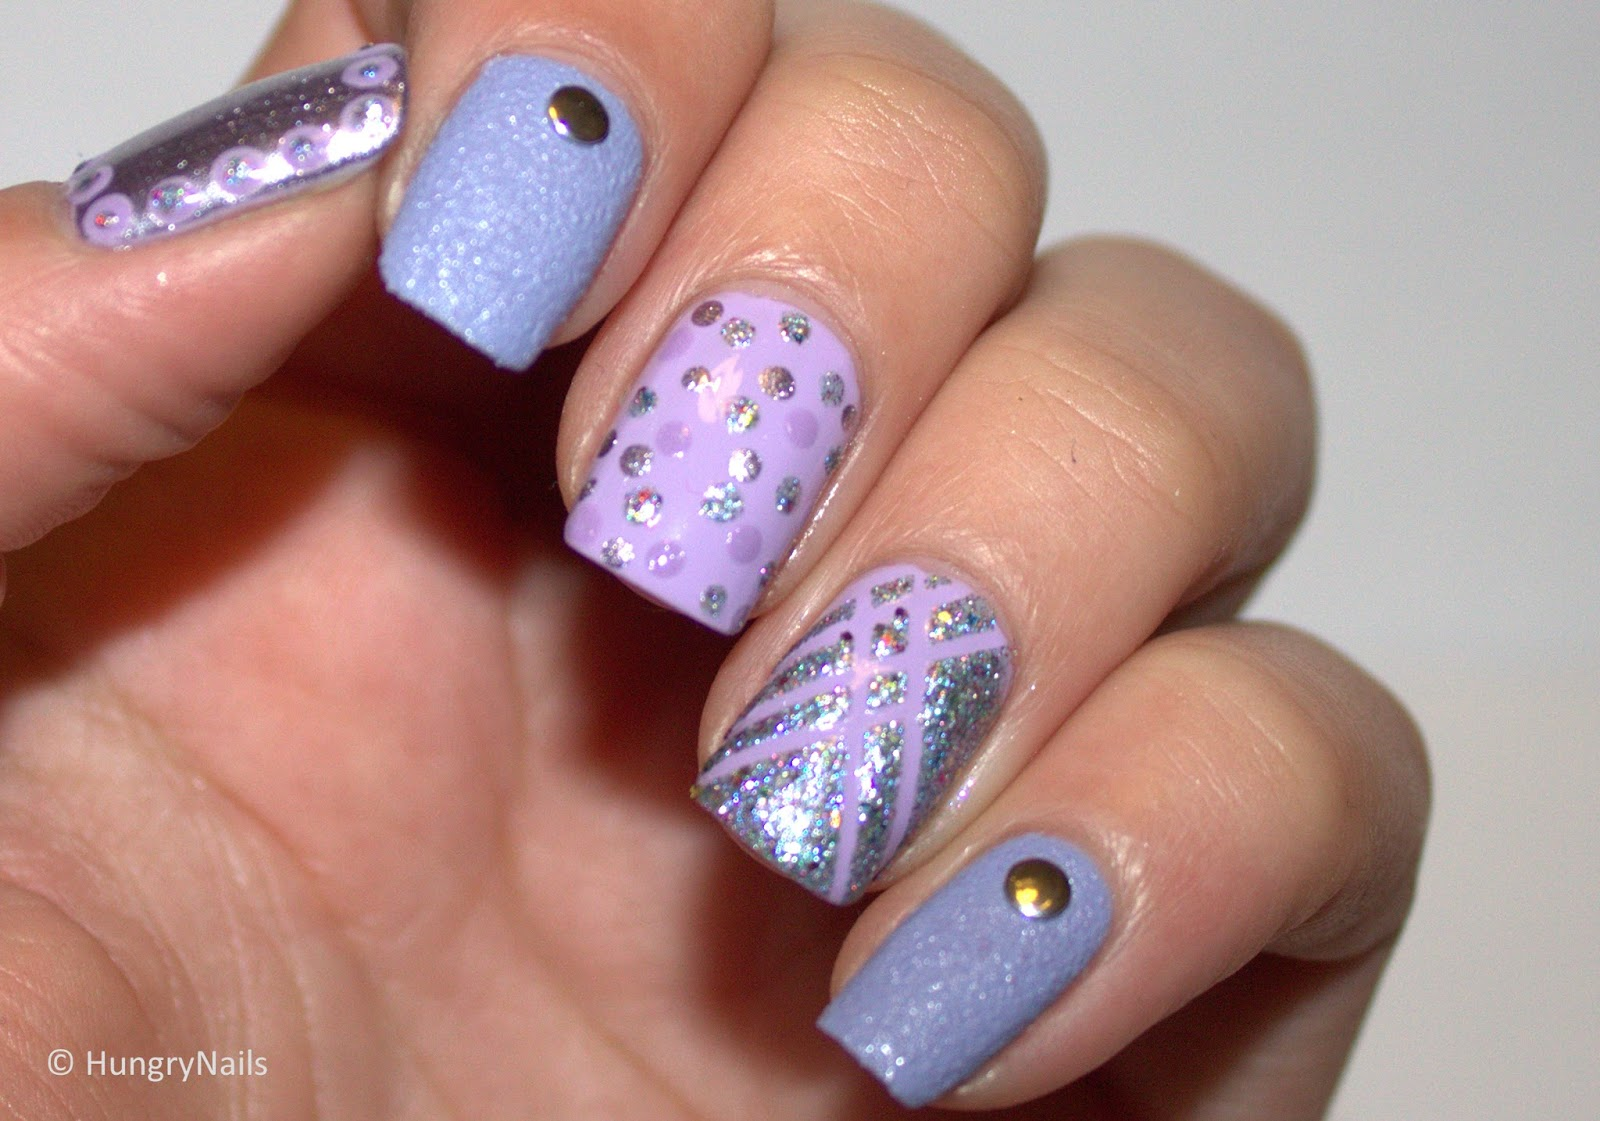 http://hungrynails.blogspot.de/2014/02/skittle-nails-in-flieder.html